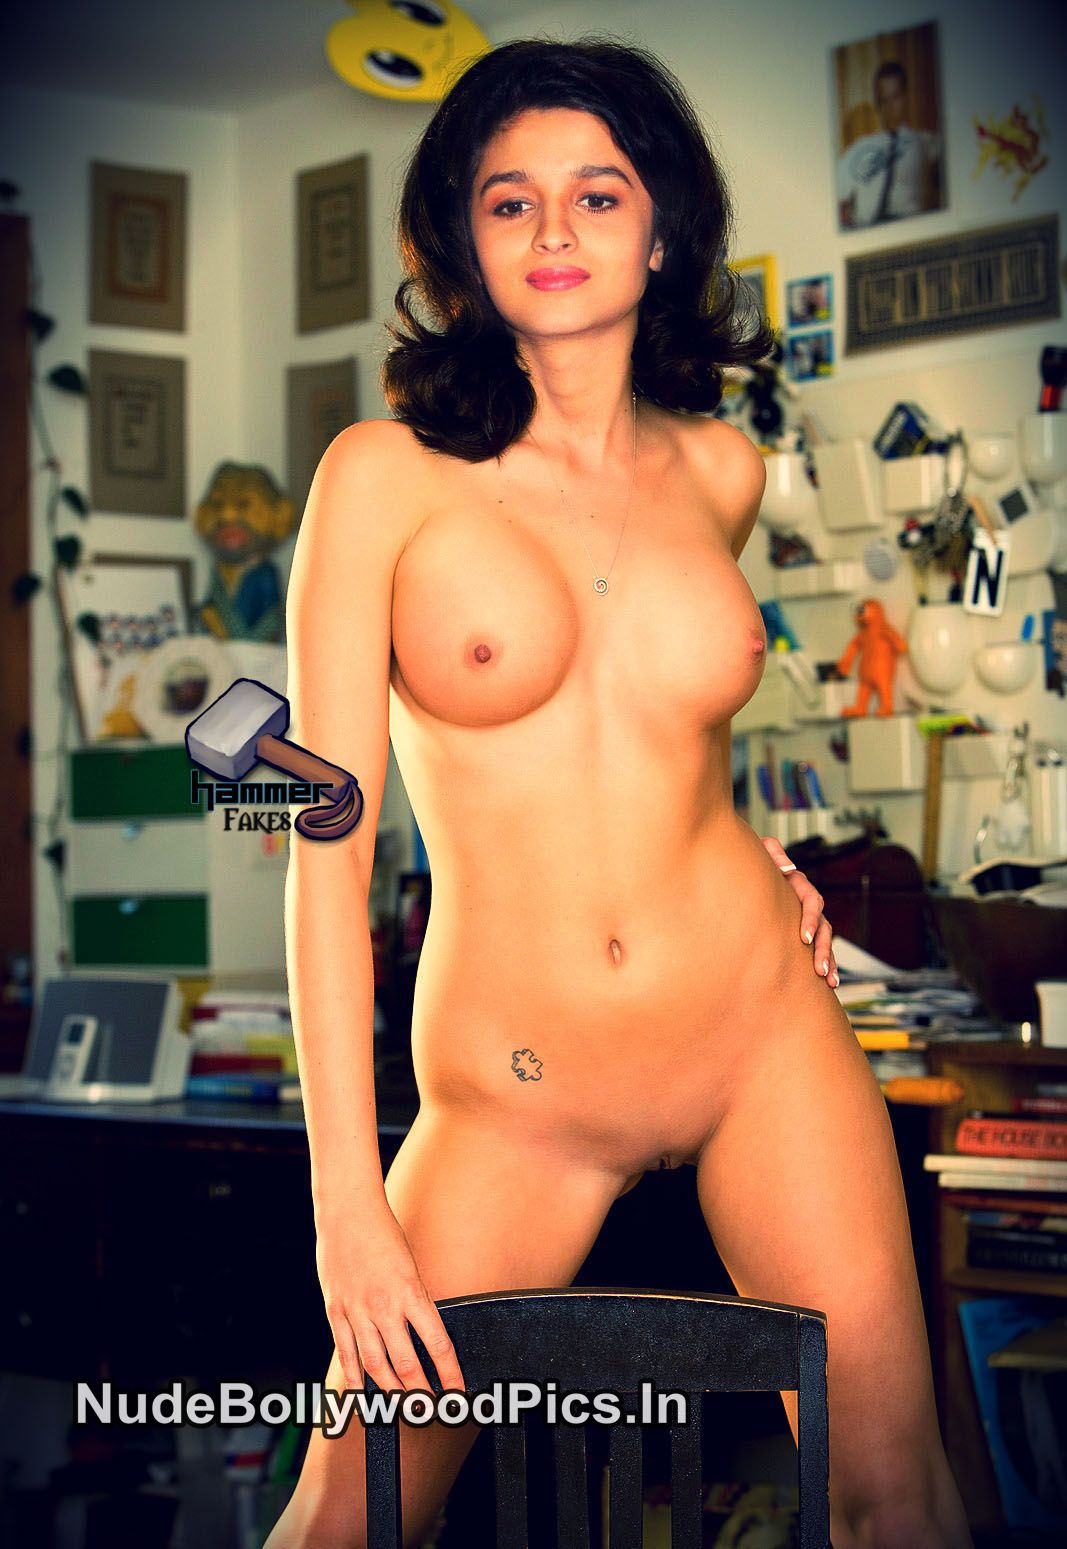 Consider, Aliya but fully nude niked high quality photo remarkable, valuable